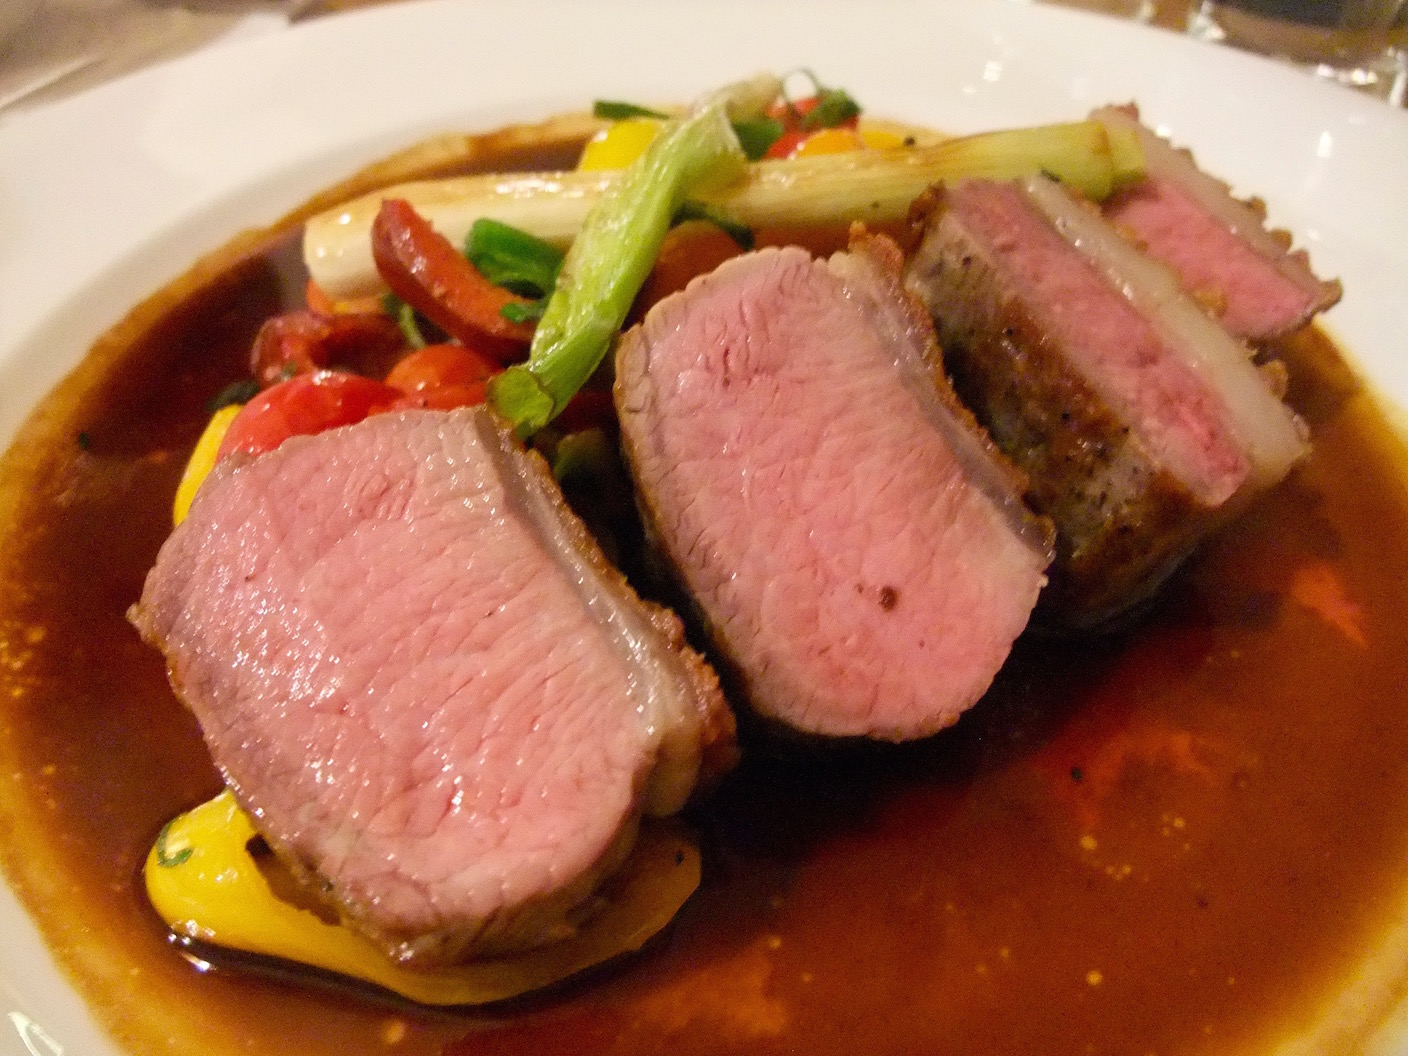 Lamb entrée with sautéed peppers in a red wine sauce